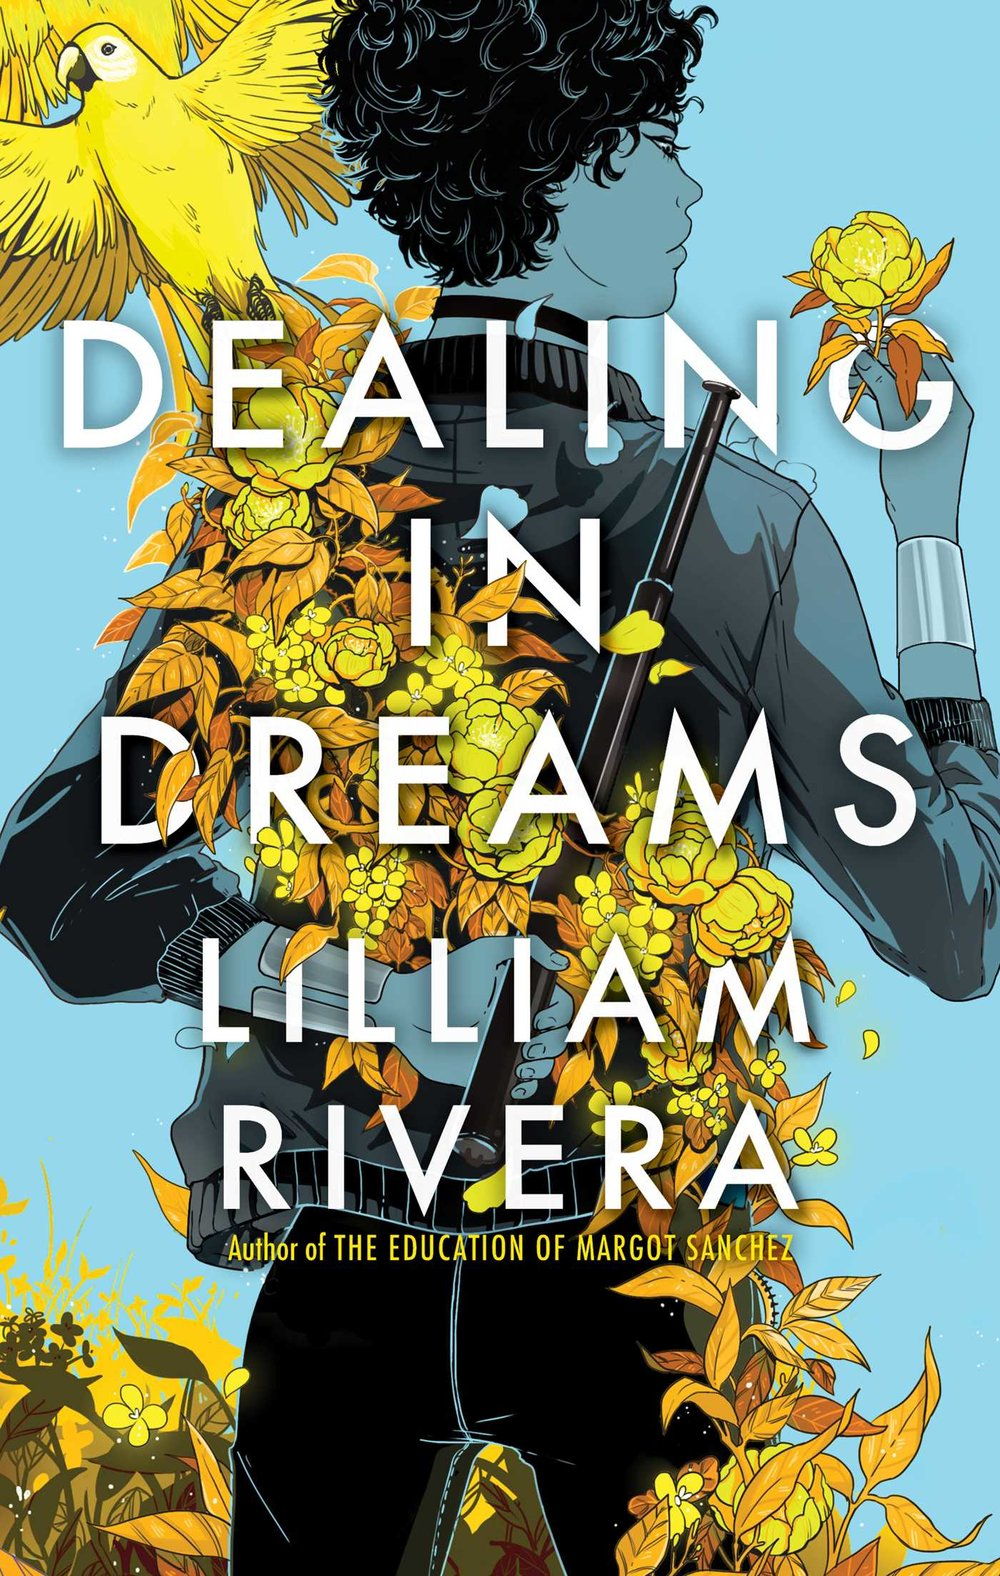 rivera-dealing-dreams.jpg